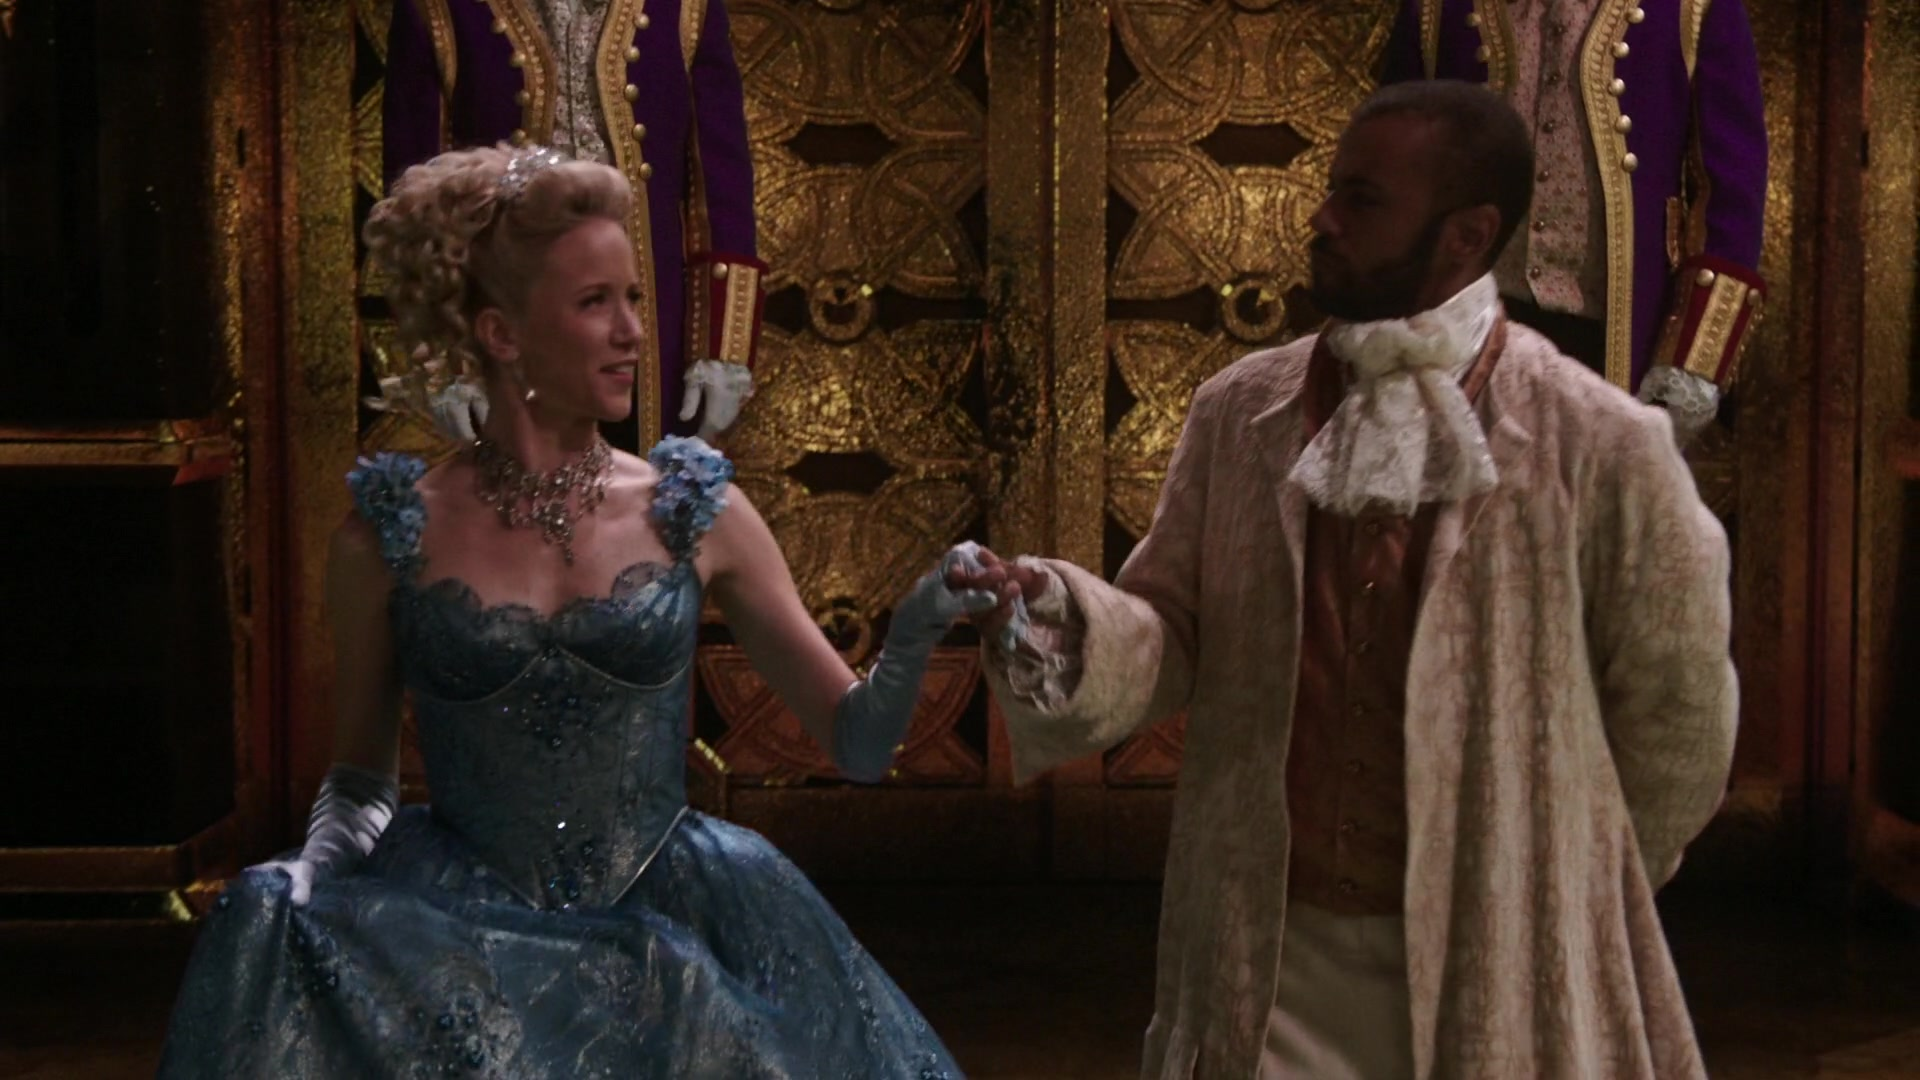 Once Upon a Time - 6x03 - The Other Shoe - Cinderella and Gus.jpg  sc 1 st  Disney Wiki - Fandom & Image - Once Upon a Time - 6x03 - The Other Shoe - Cinderella and ...